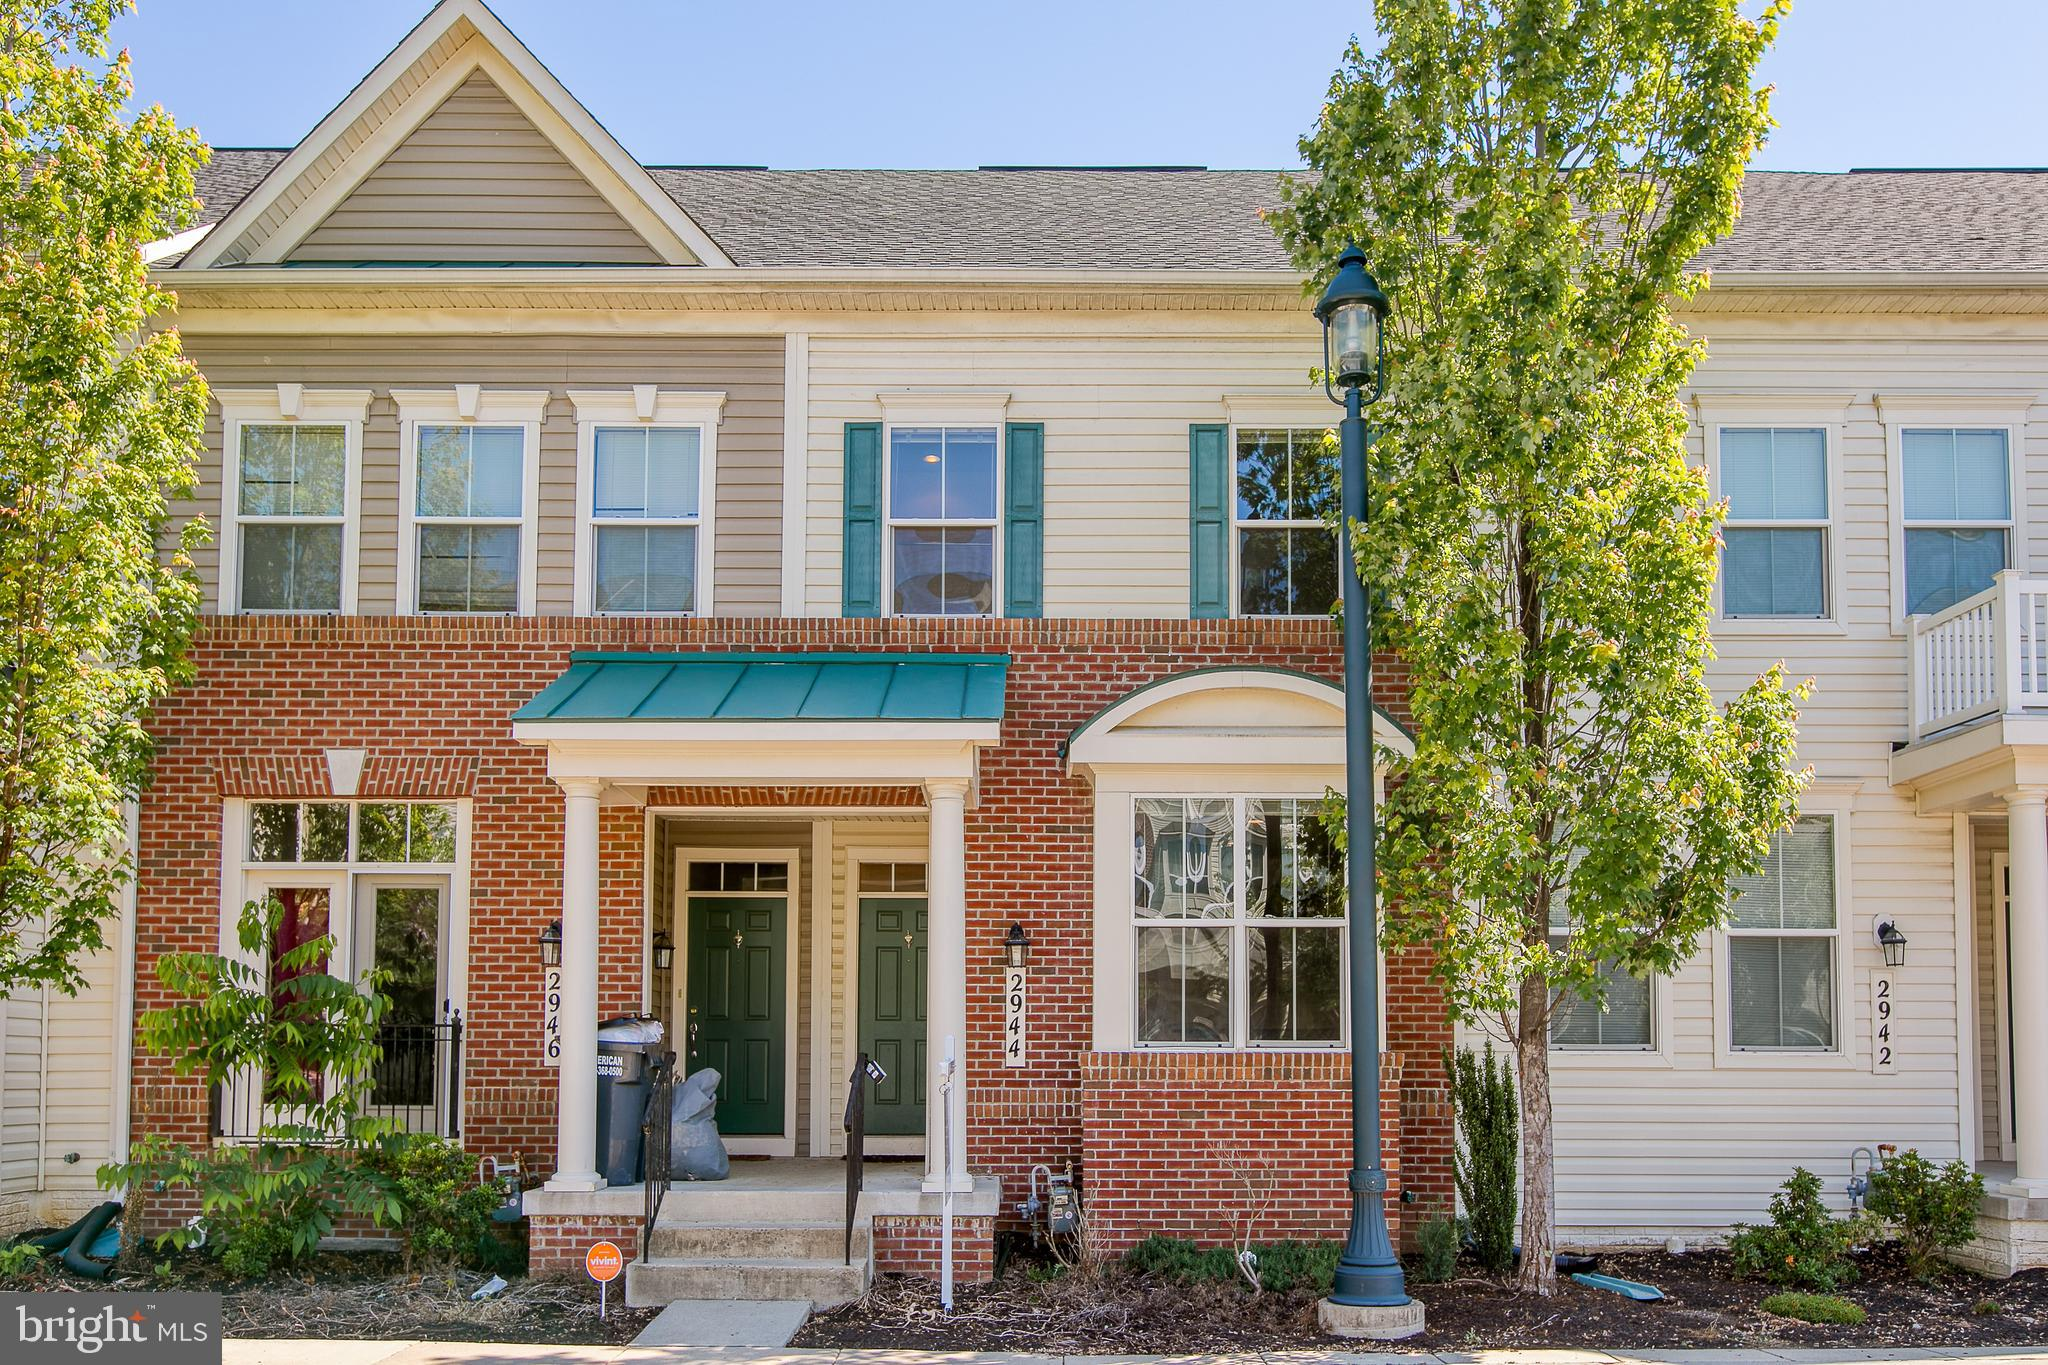 This town home offers 3 master bedrooms. 2 on upper level 1 in basement. Kitchen has granite counter lots of cabinets. Great rec/media room in basement. Great location just a short distance to shopping, dining, recreation, commuter lots, and public transportation.   Great community with pool, tot lots, fitness center.